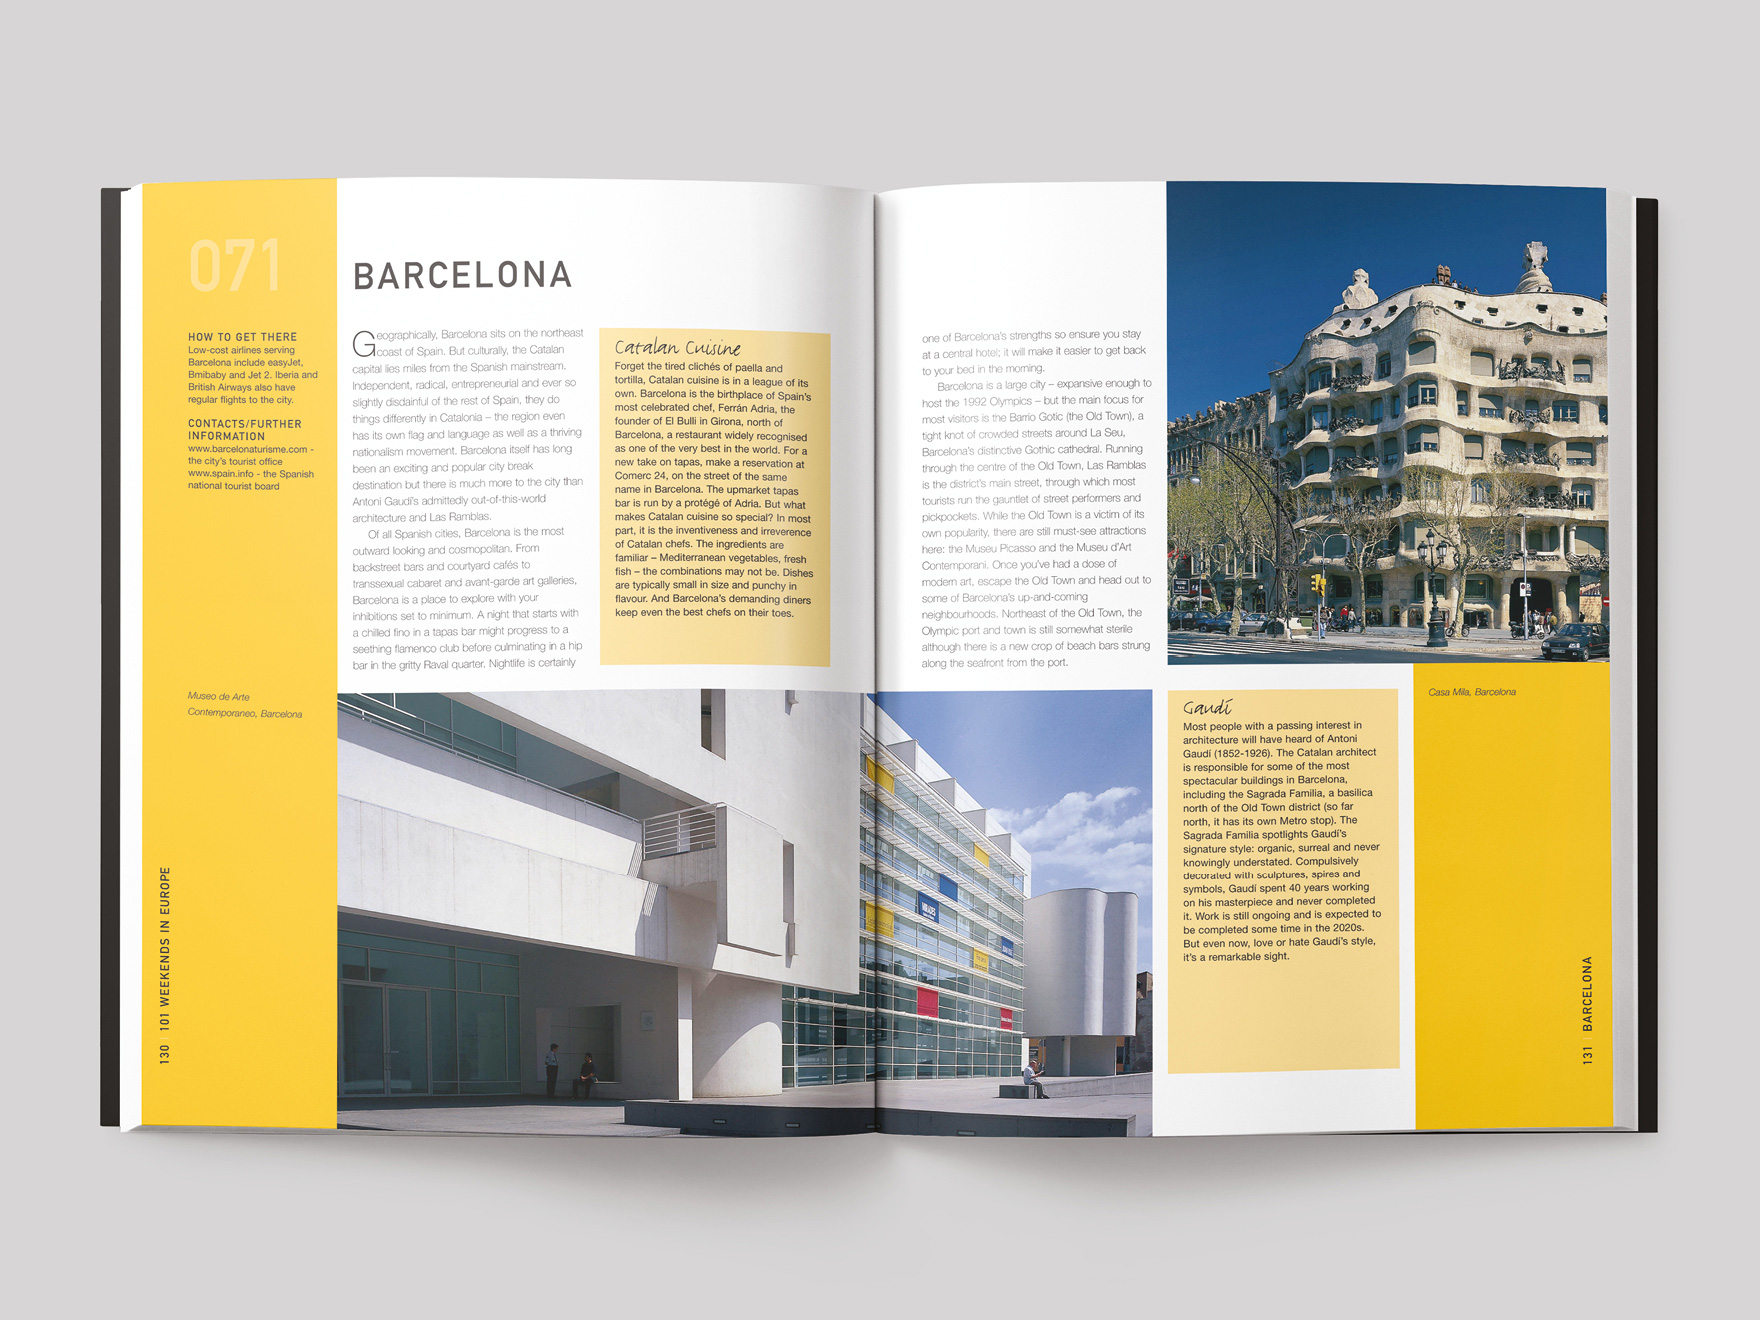 Inside pages from the 101 Weekends in Europe book showing a double page entry for Barcelona